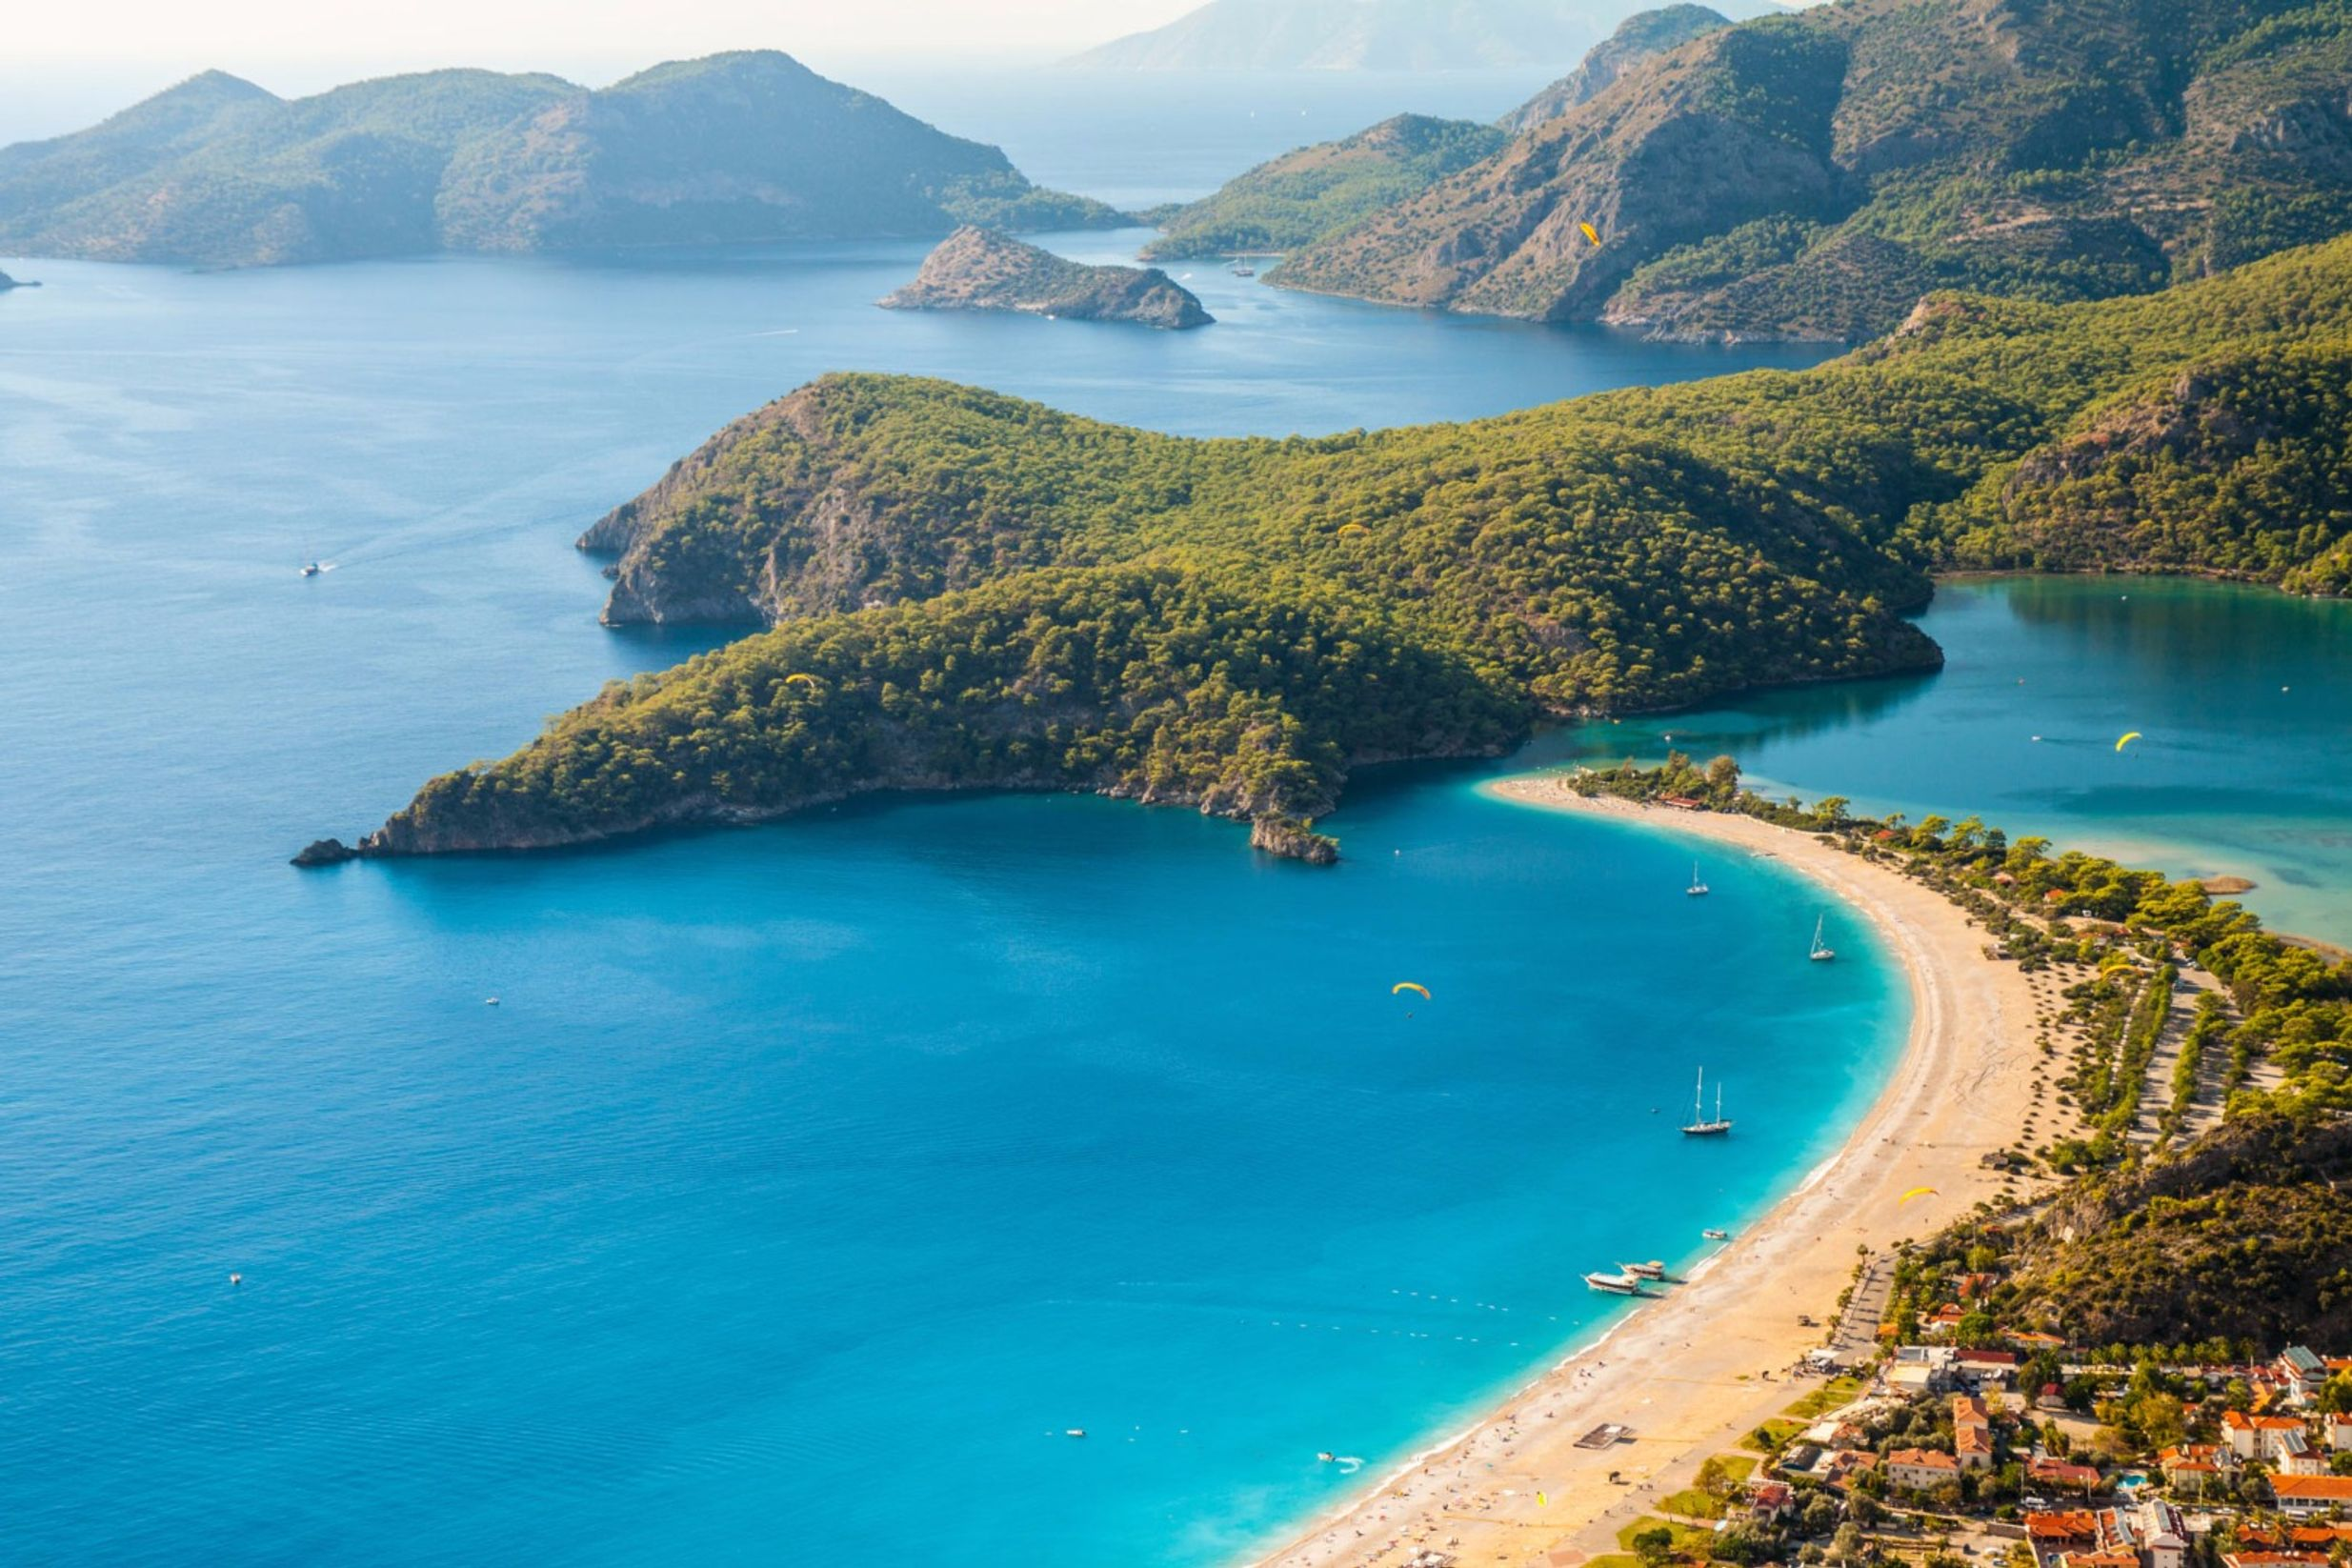 Oludeniz, one of the world's best beaches